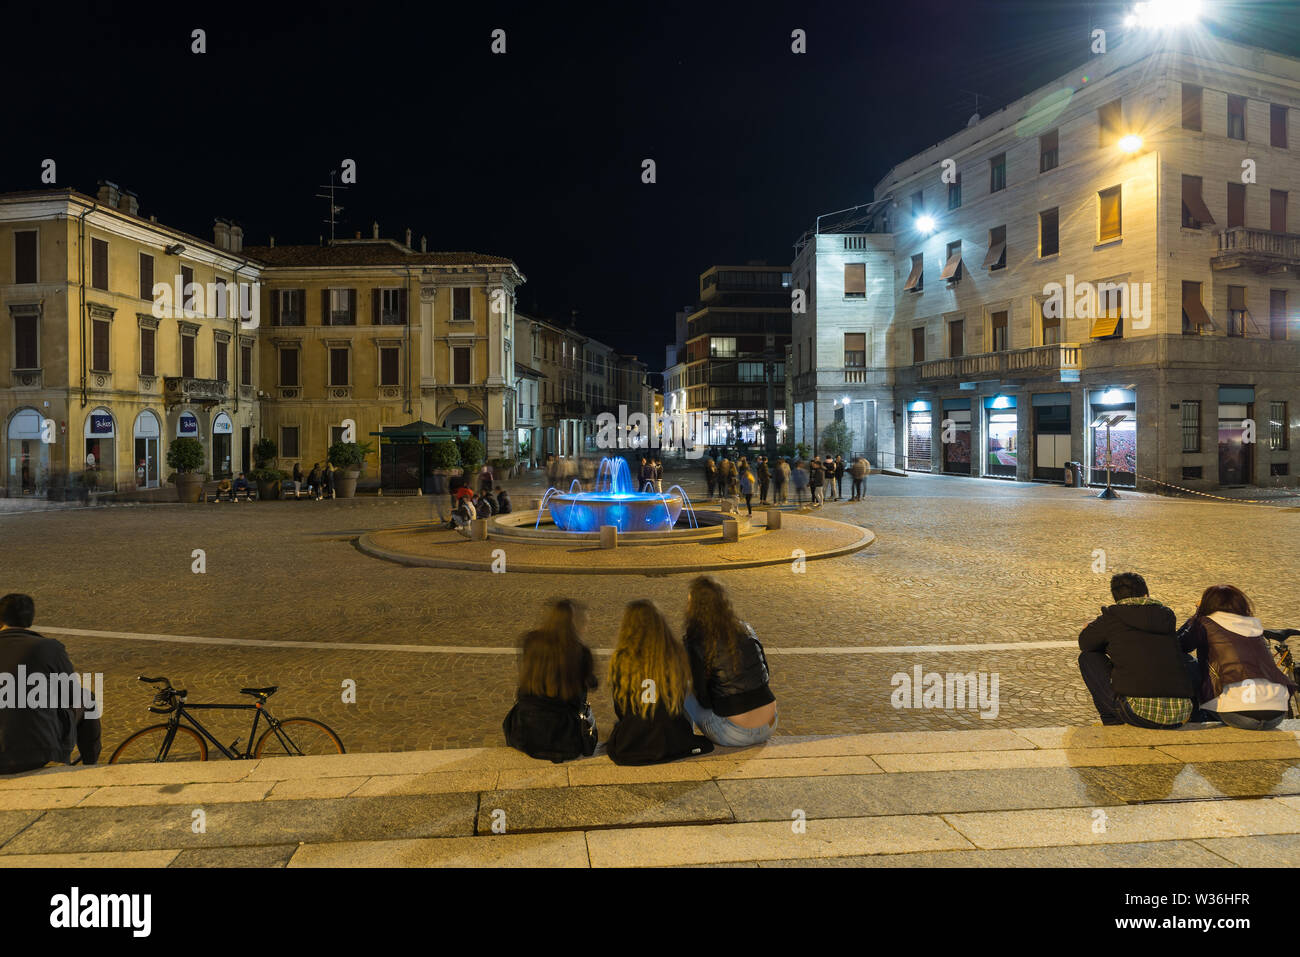 Historic center of Gallarate and Piazza della Libertà, the main square of the city, at night Italy - Stock Image